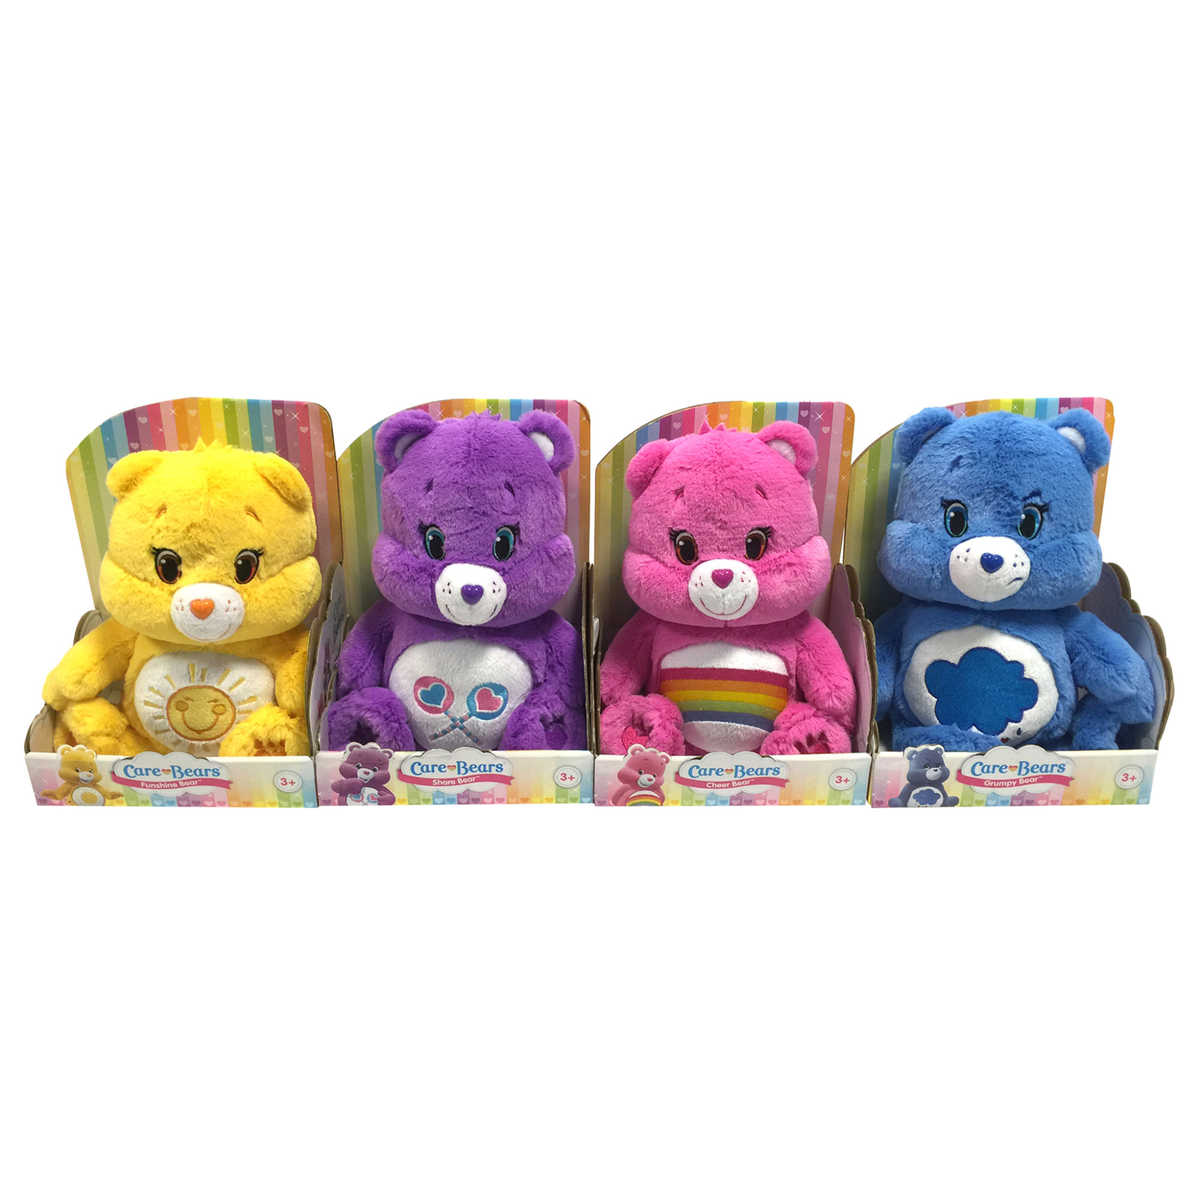 55 Best Care Bear Pictures And Photos